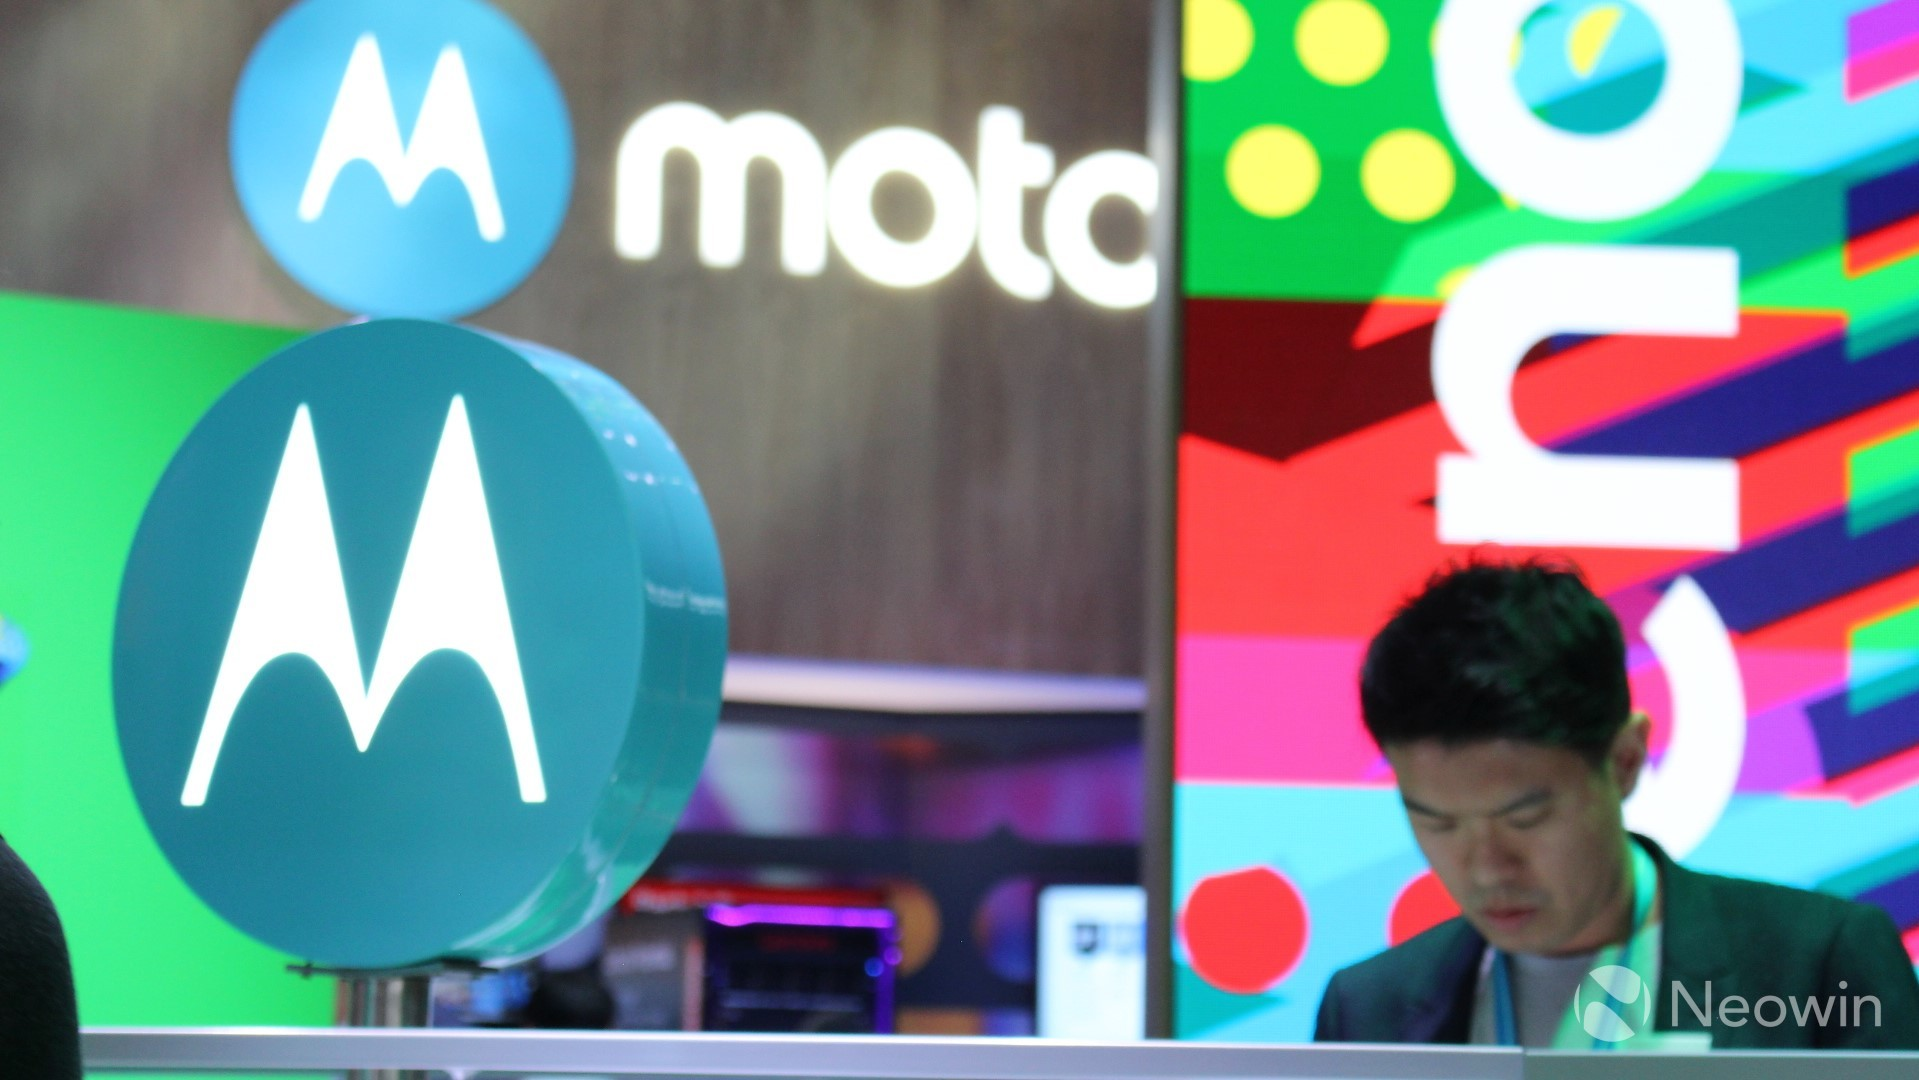 Moto X Pure Edition Latest News & Update: Android 7.0 Nougat Update Now Available With Multitasking, Date Saver Features At $300